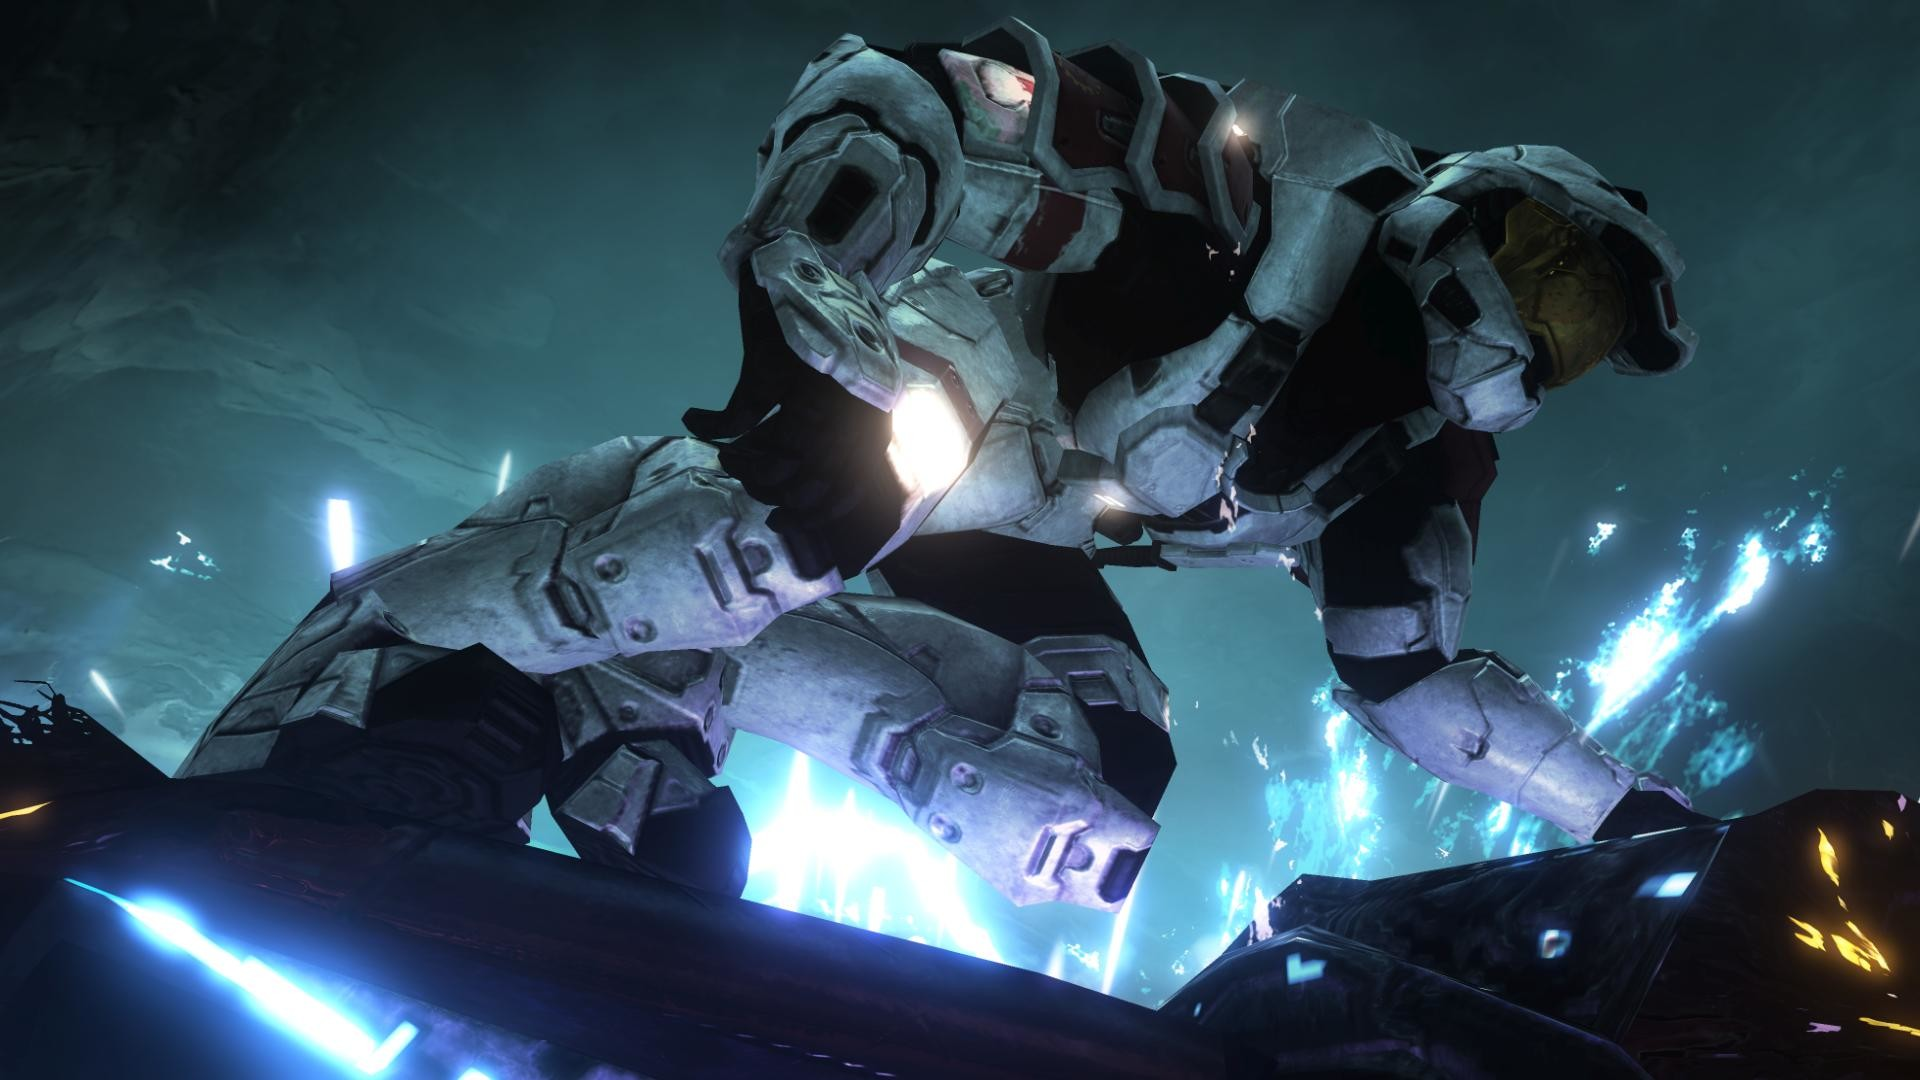 Halo HD Wallpapers Backgrounds Wallpaper 1920×1080 Halo Wallpaper Hd (37  Wallpapers)  